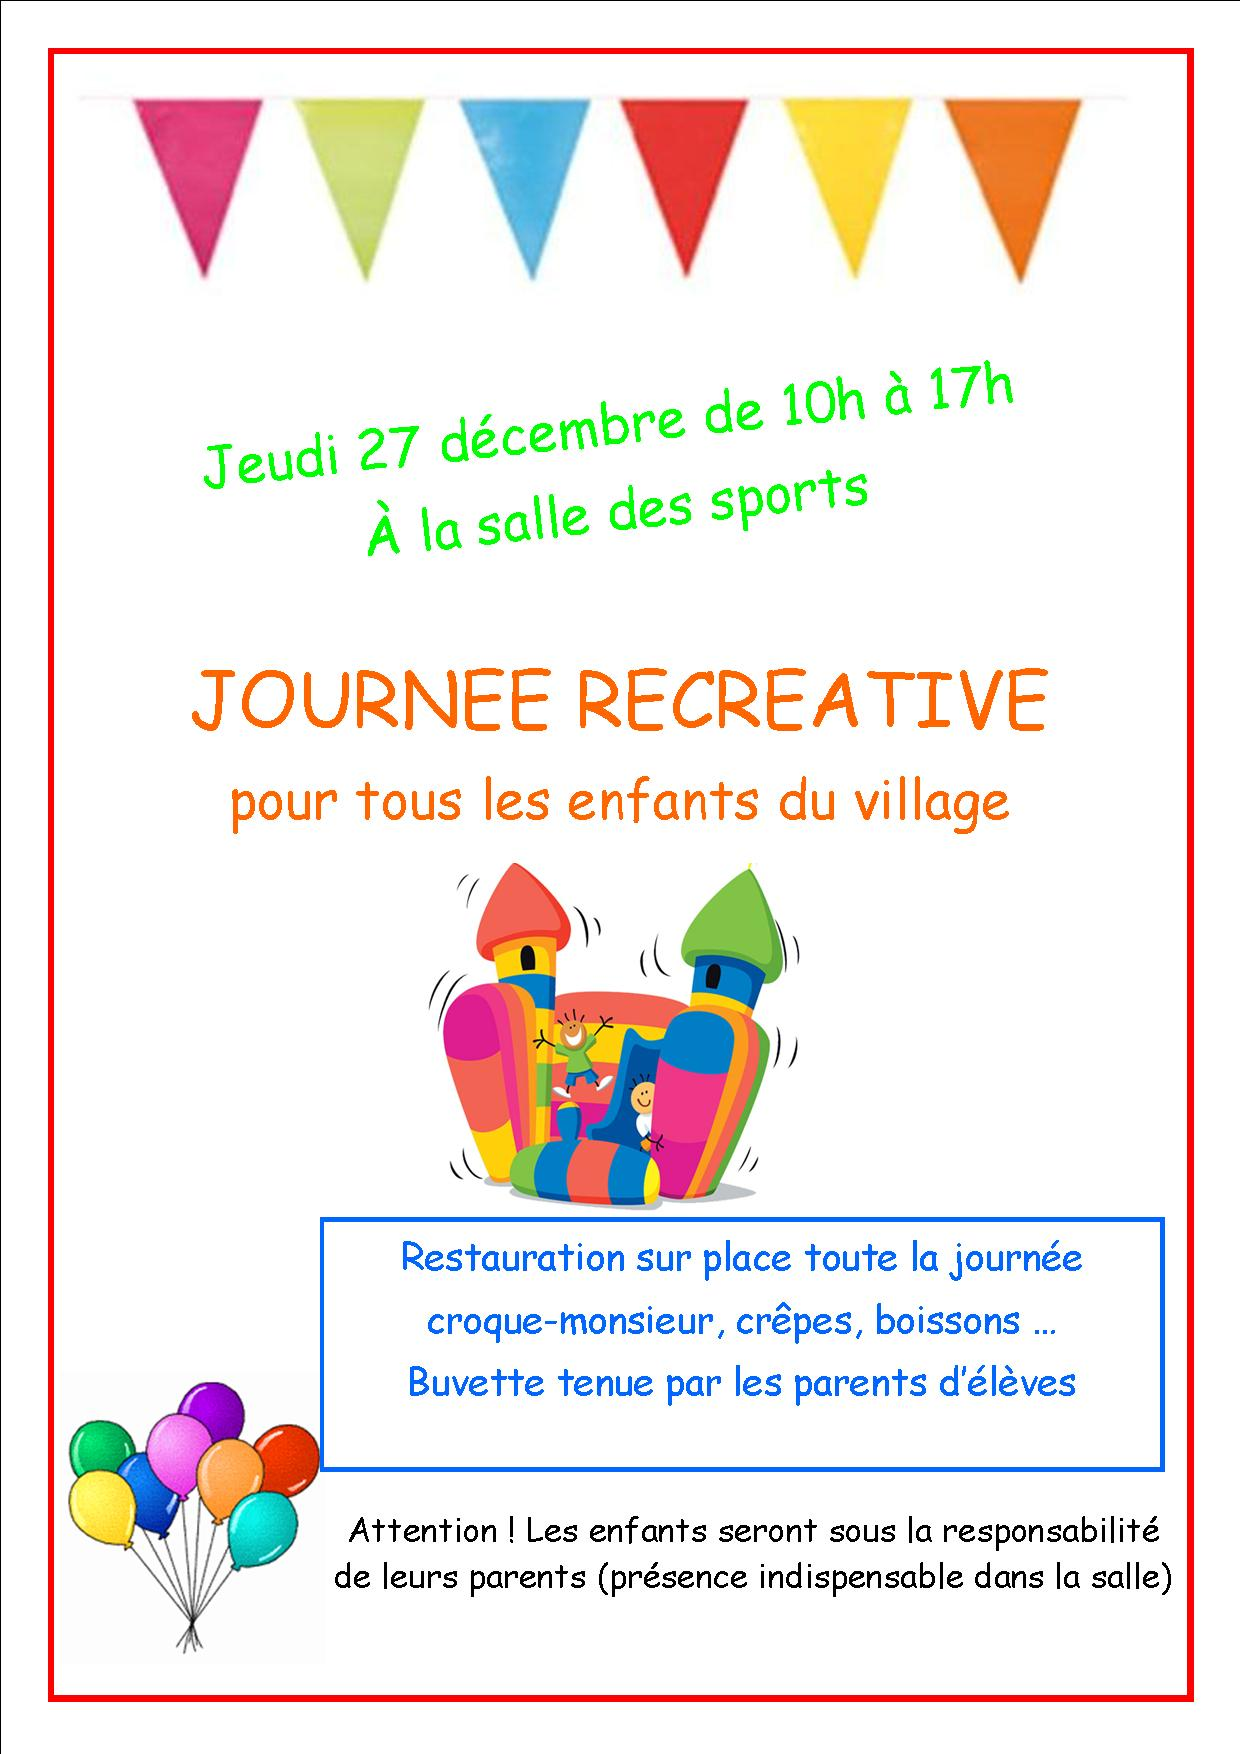 Affiche journee recreative 2018